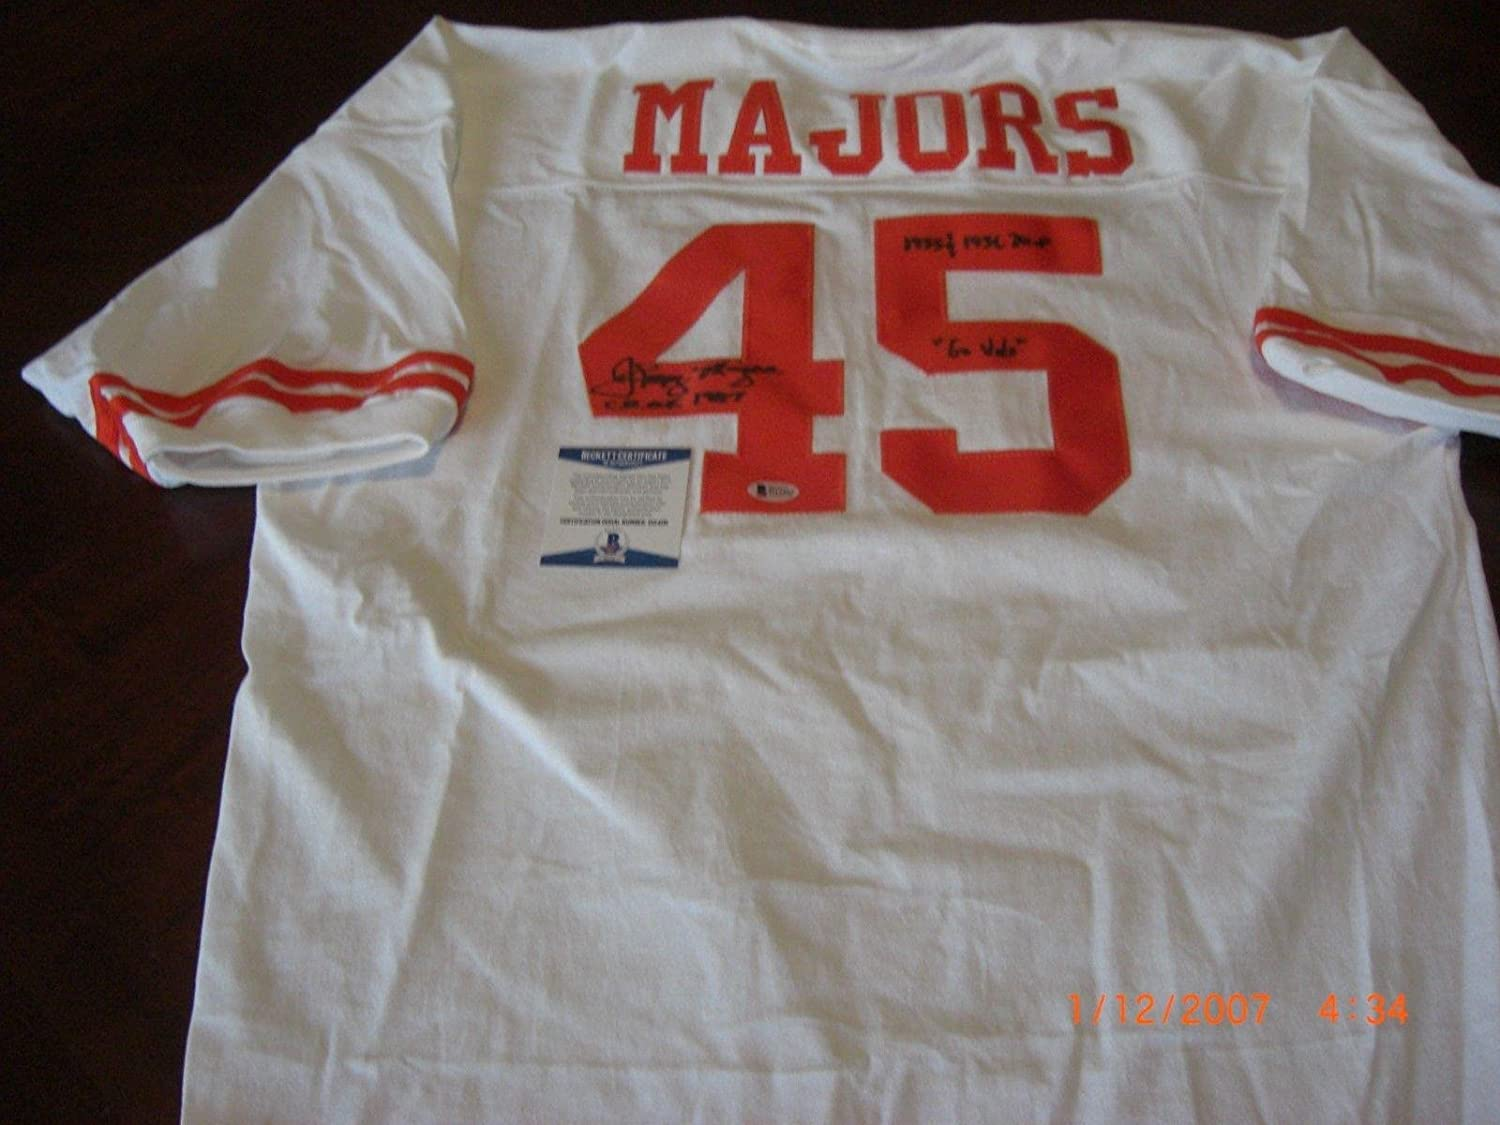 Johnny Majors Autographed Jersey - Tennessee Vols 1955 & 1956 Mvp chof 1987 W coa - Beckett Authentication